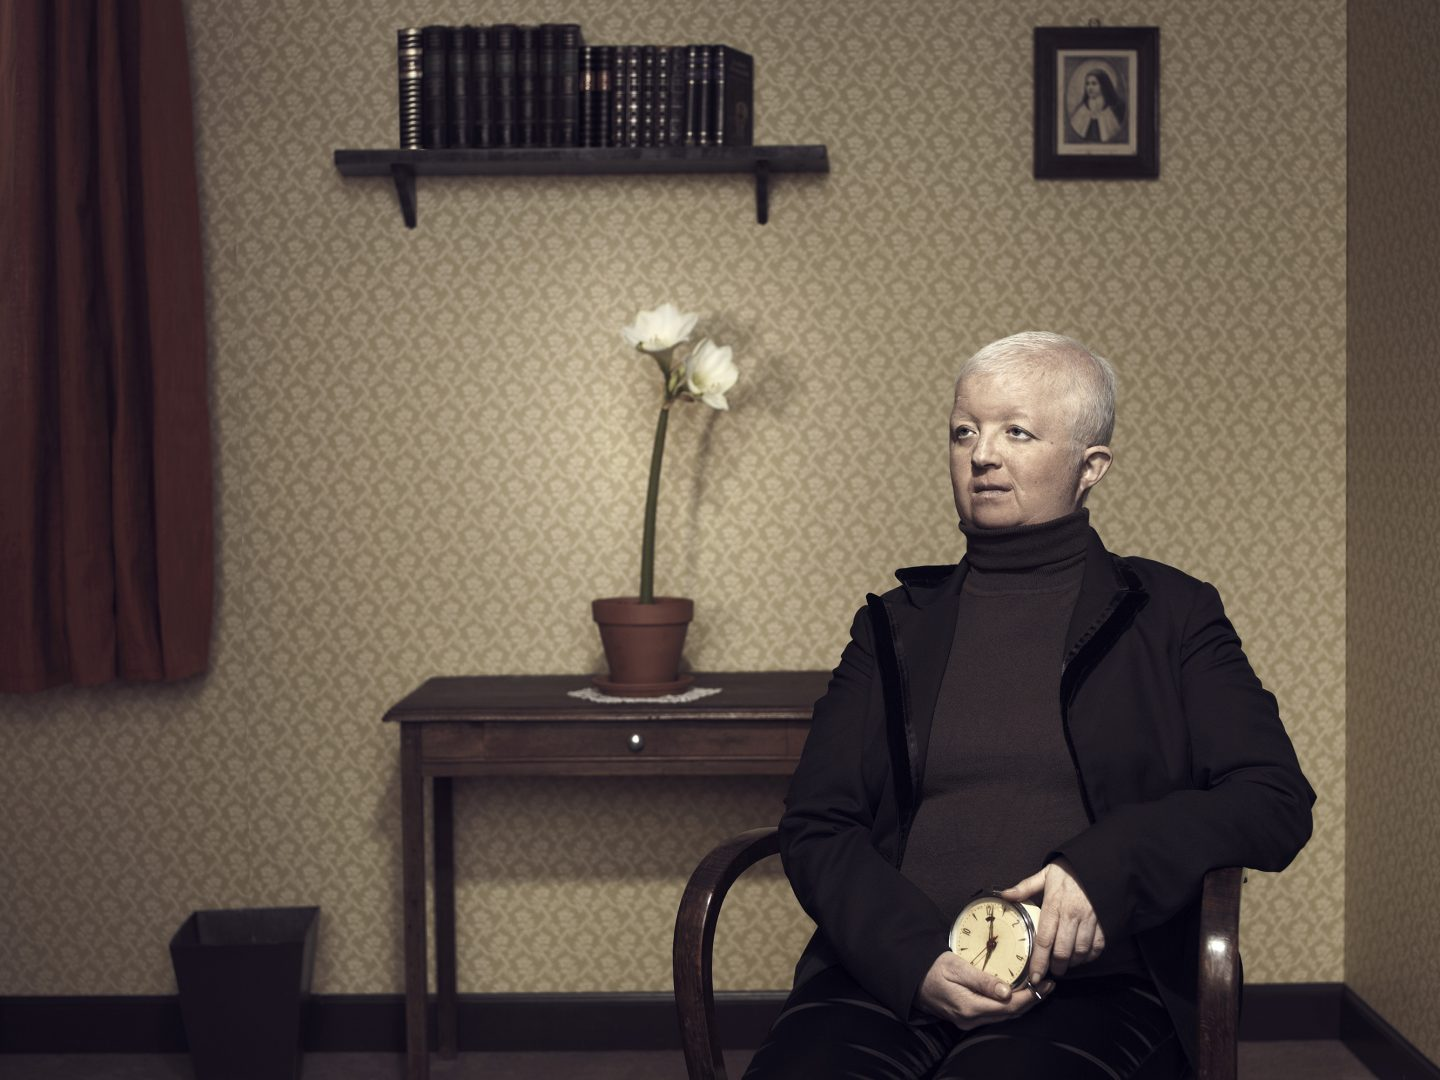 Woman with alarm clock sitting on chair in room 42 by Stefan Rappo